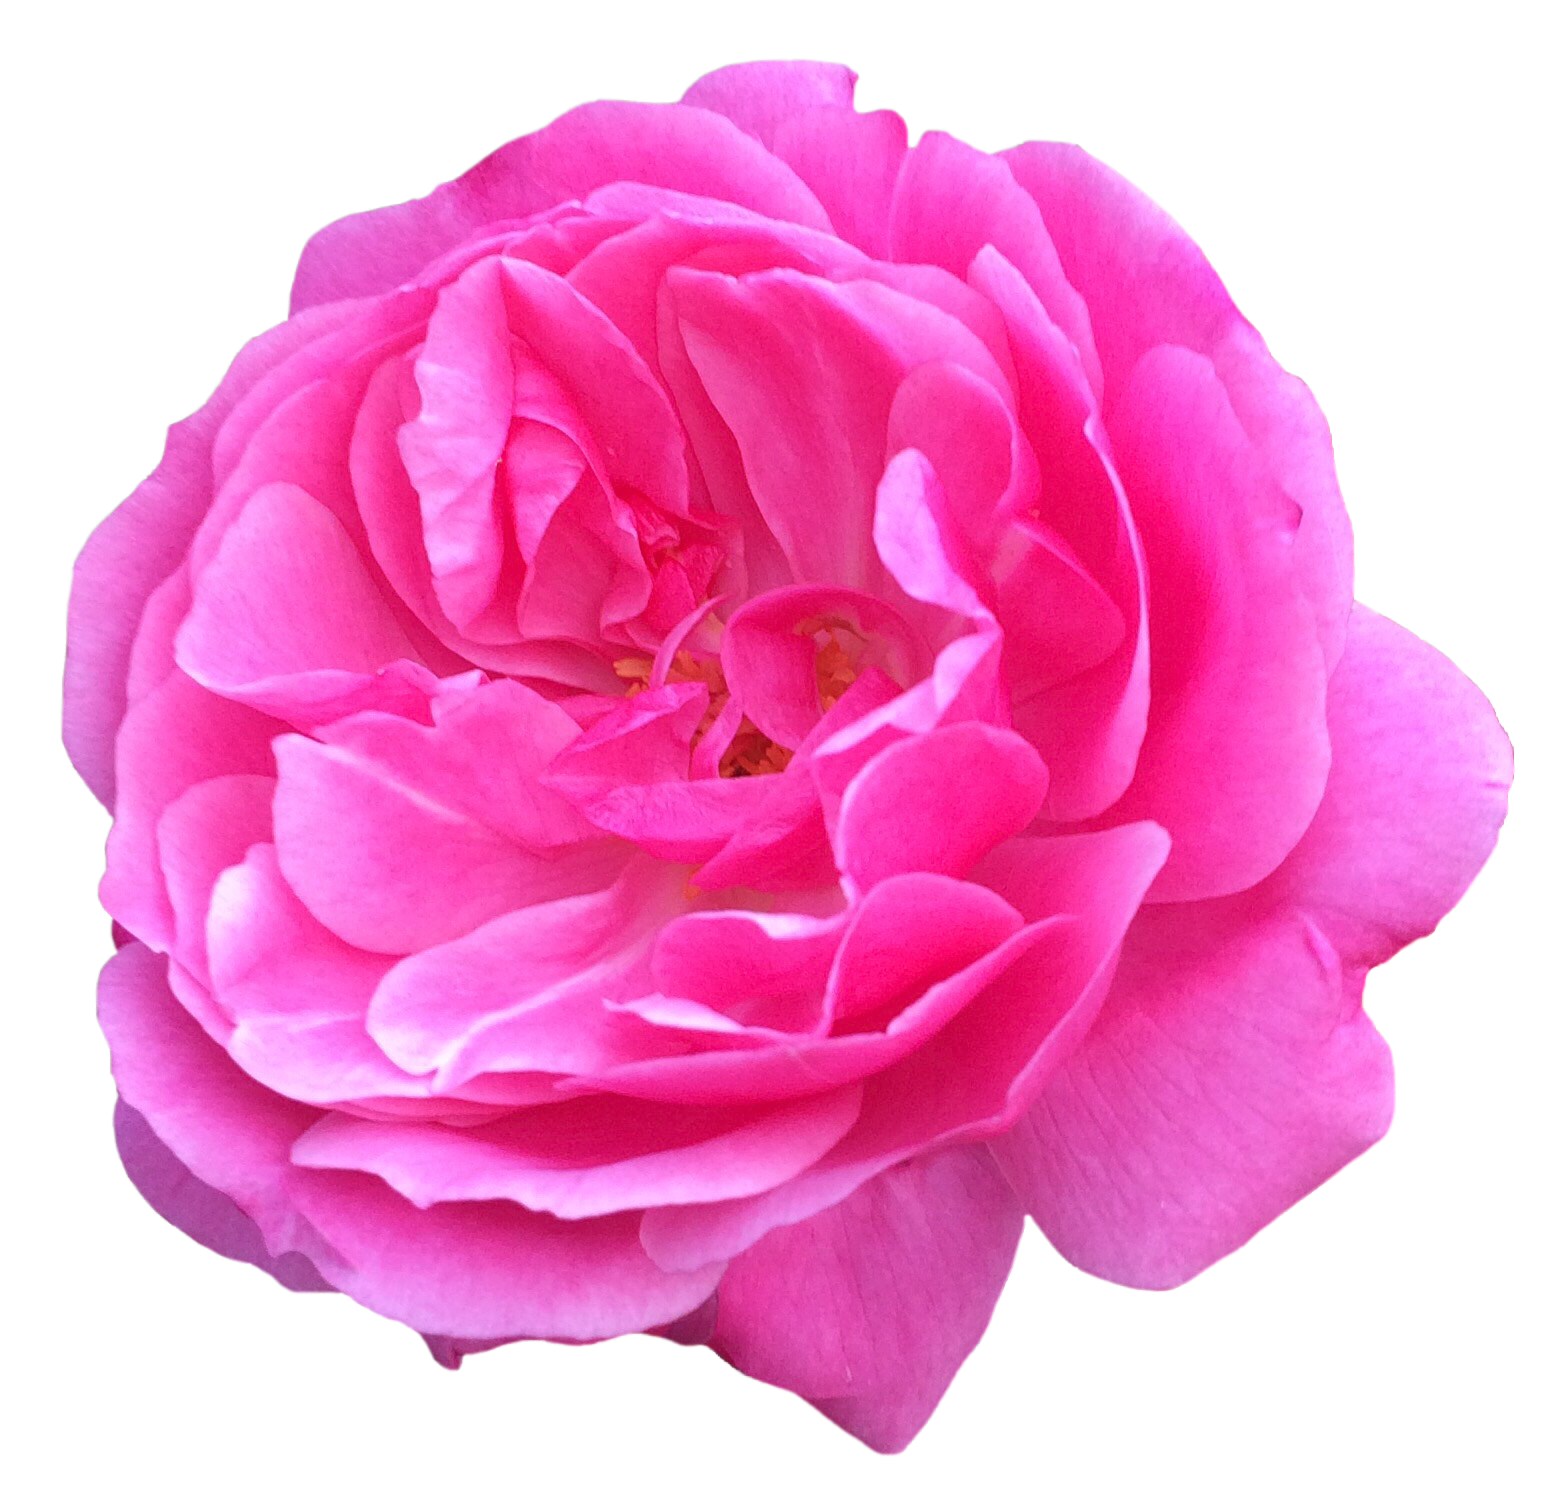 A particularly lovely pink rose